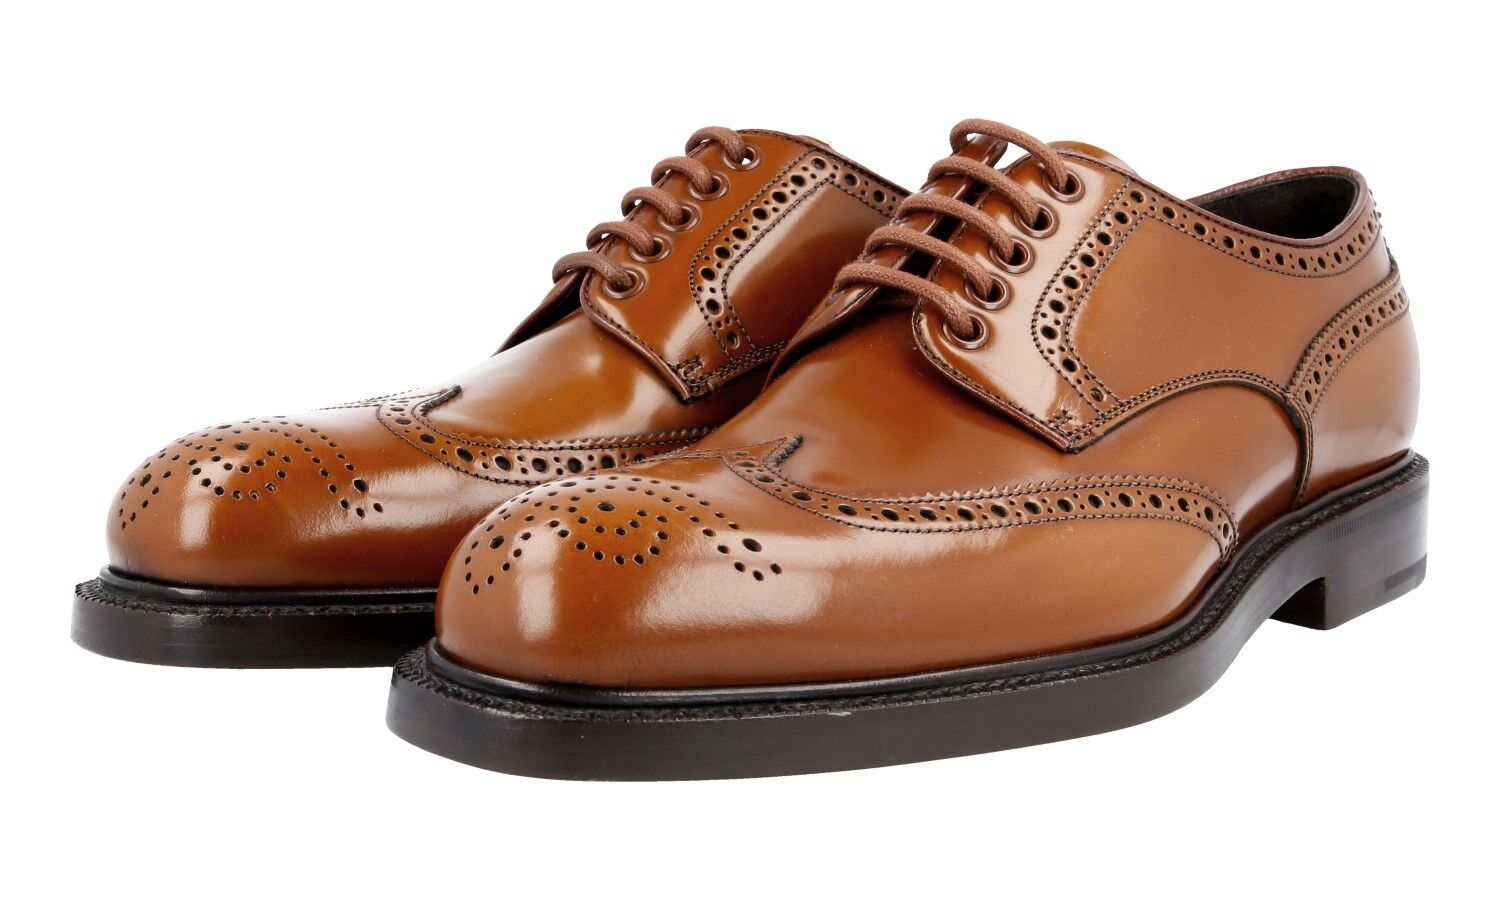 L SO PRADA Wingtip DERBY Full Brogue     2ea069 MARRONE NUOVO NEW 10 44 44,5 85e5e5